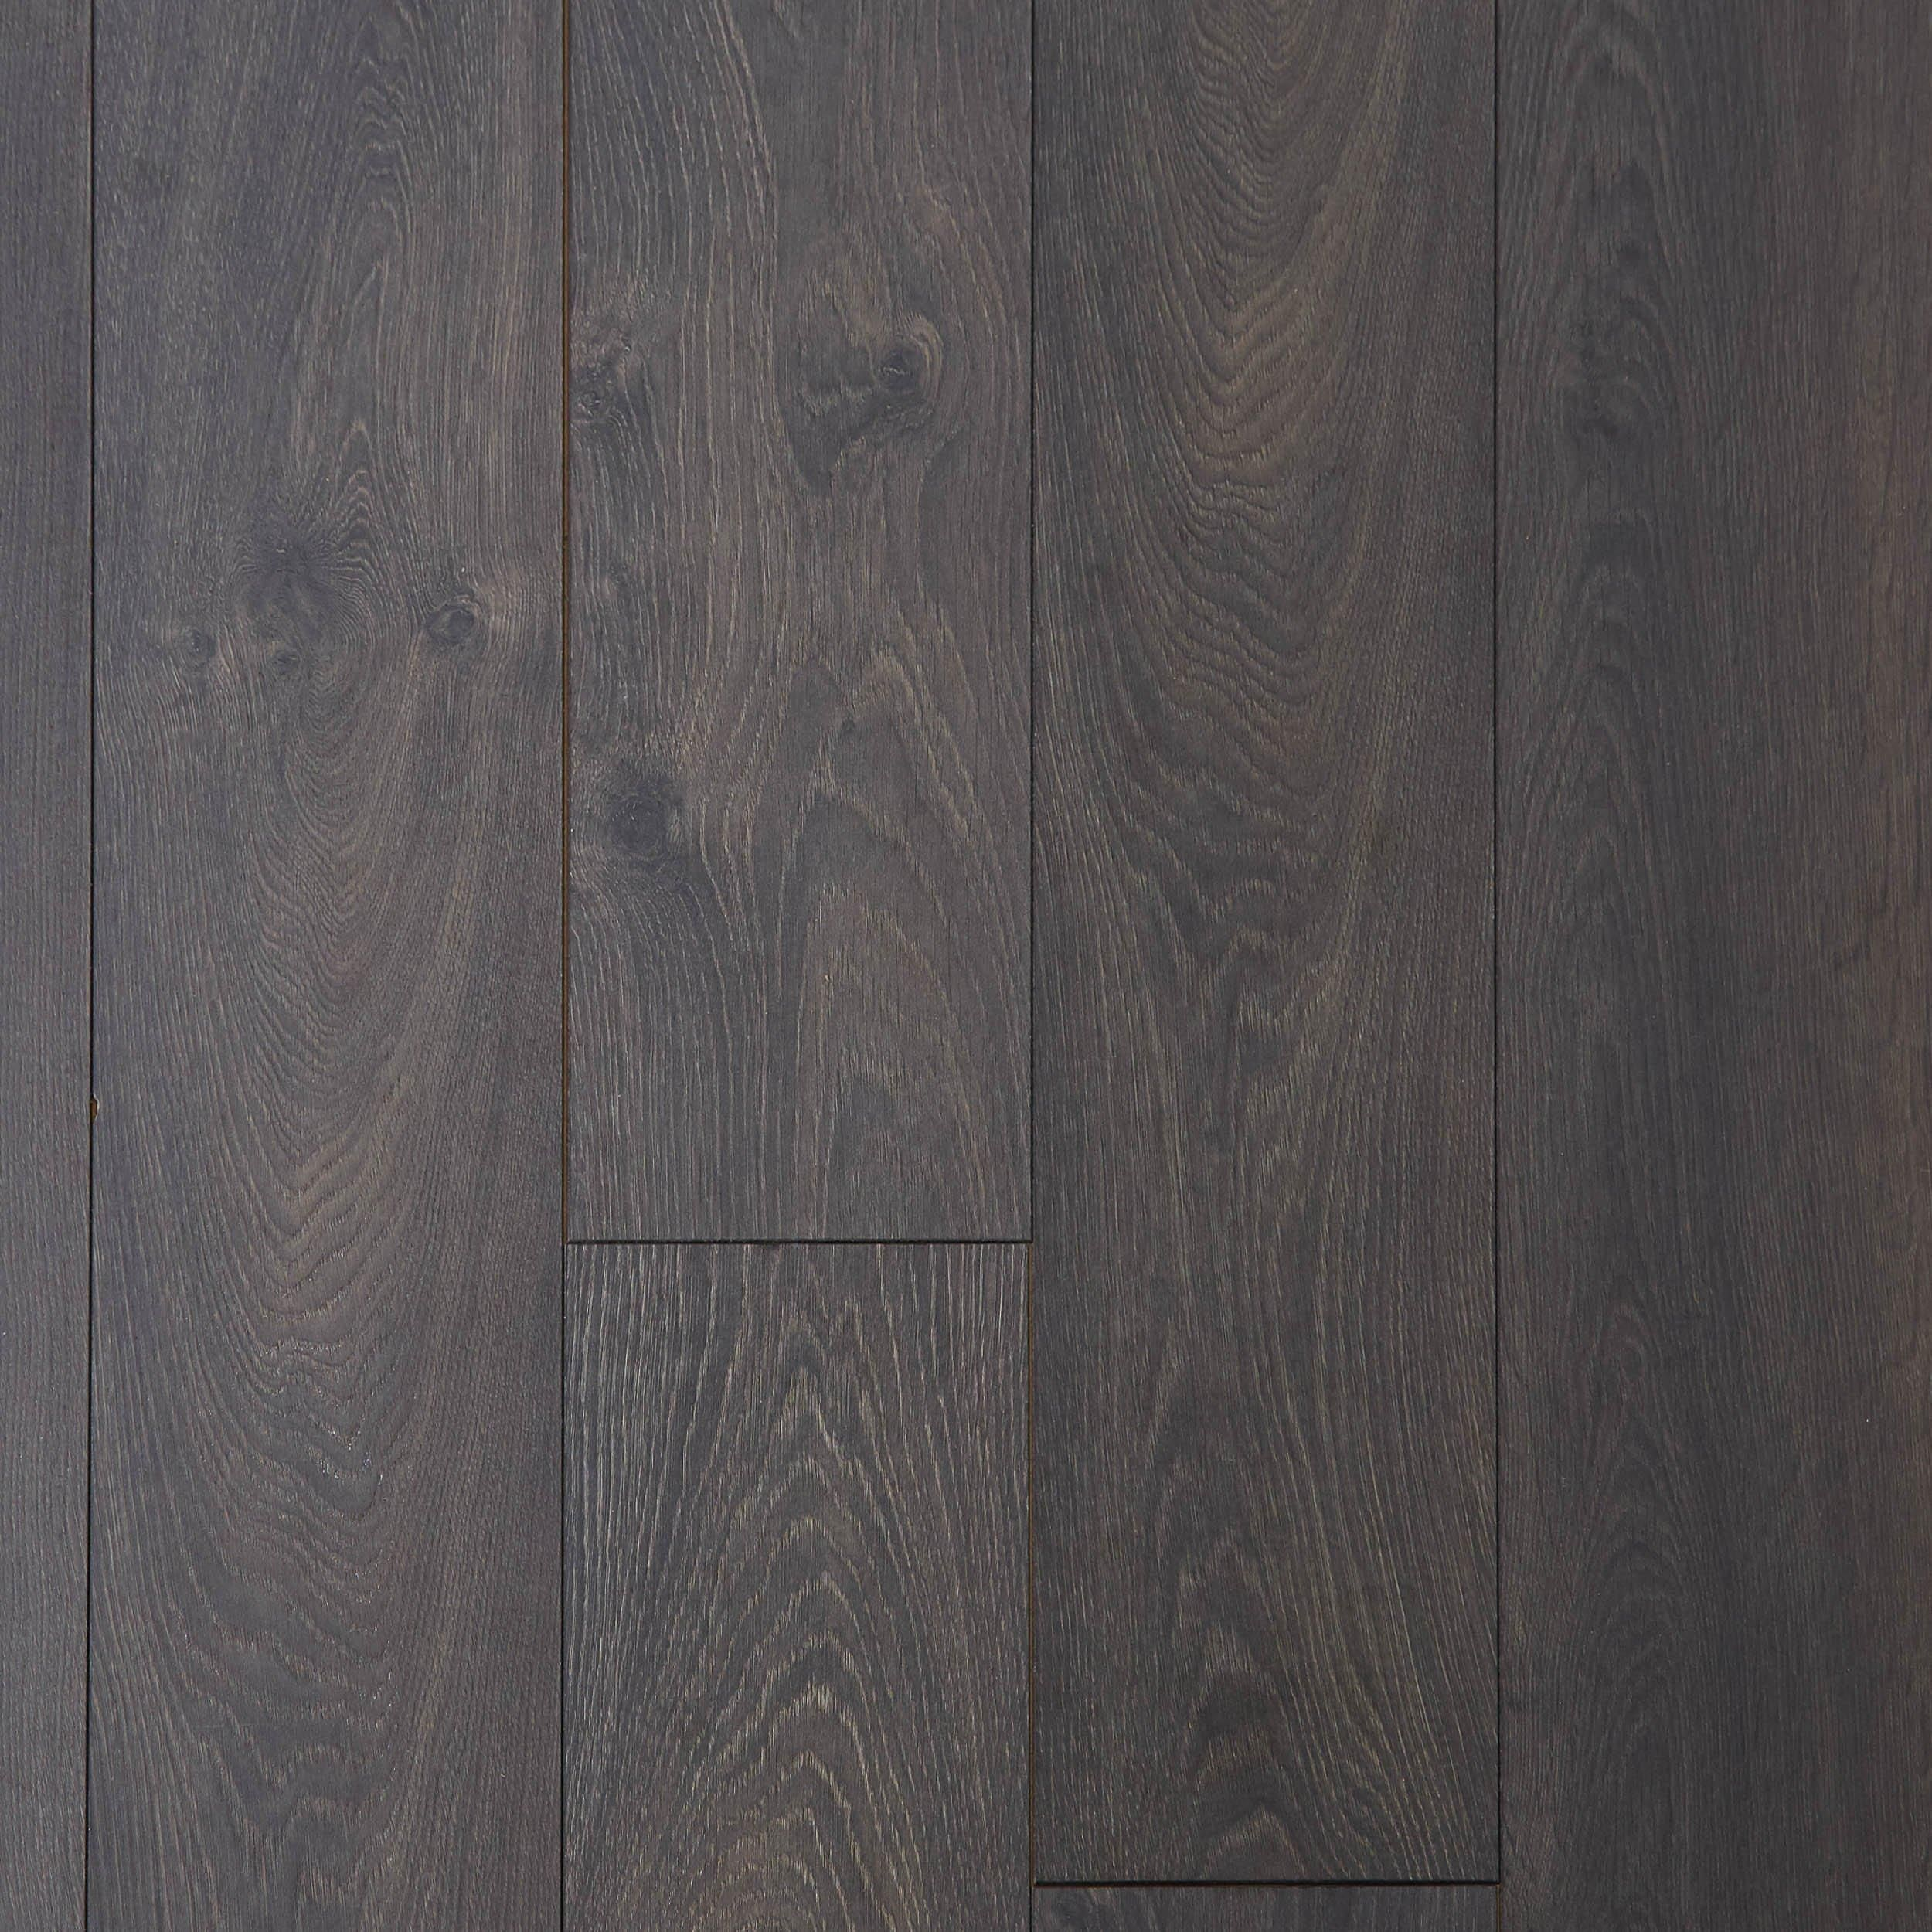 Jet Black Oak Matte Laminate In 2020 Flooring Black Laminate Flooring Decor Interior Design